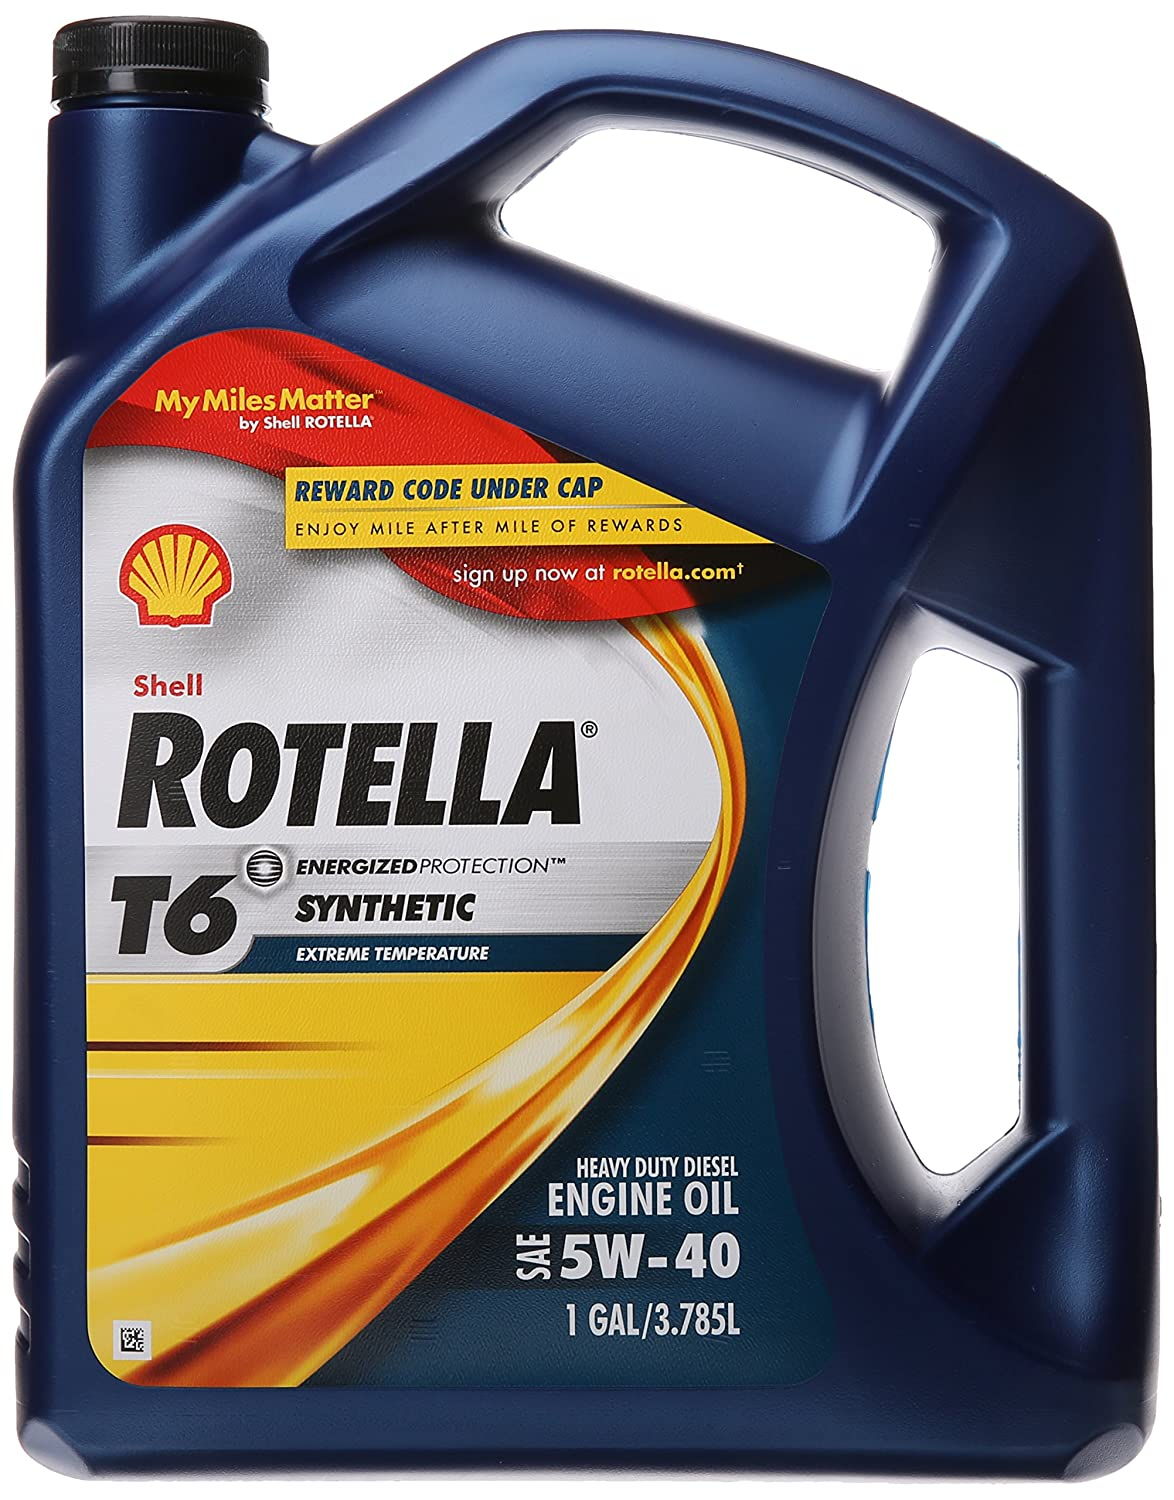 Shell Rotella T6 Full Synthetic Heavy Duty Engine Oil